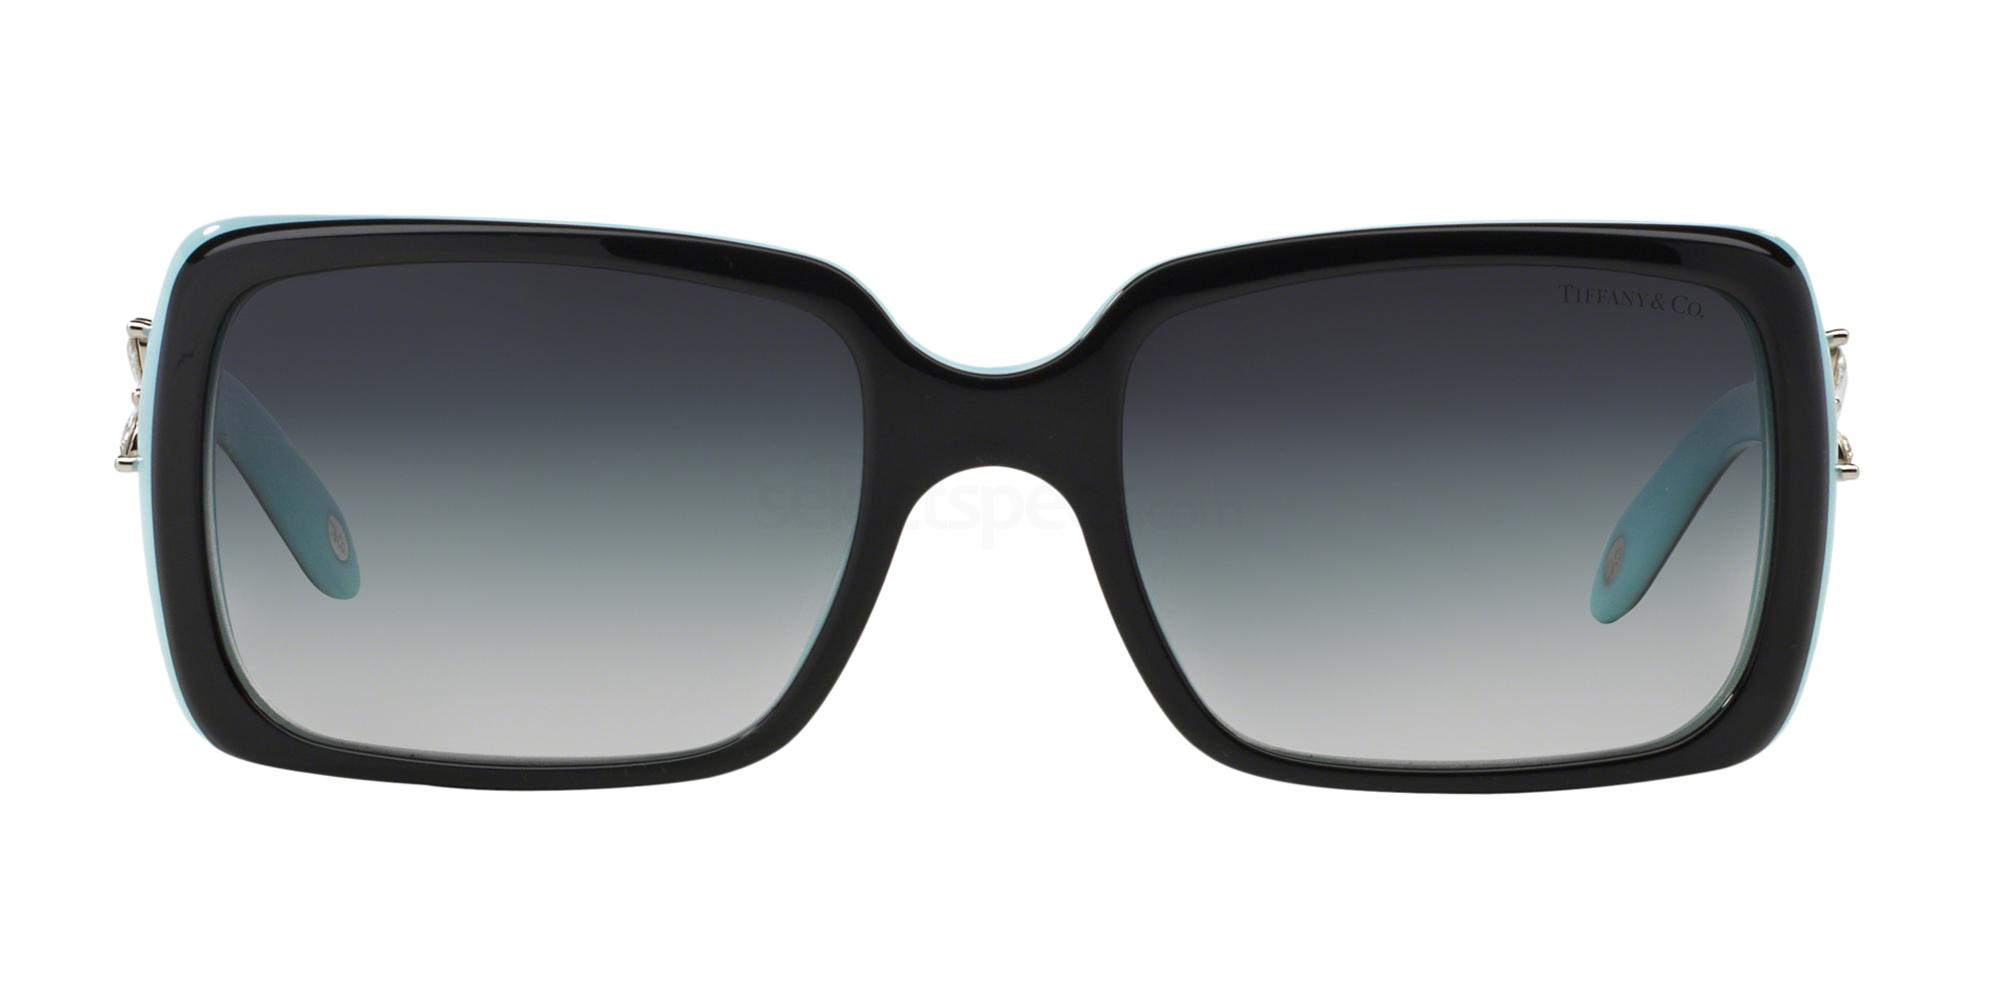 Tiffany & Co. sunglasses valentine's gifts for her